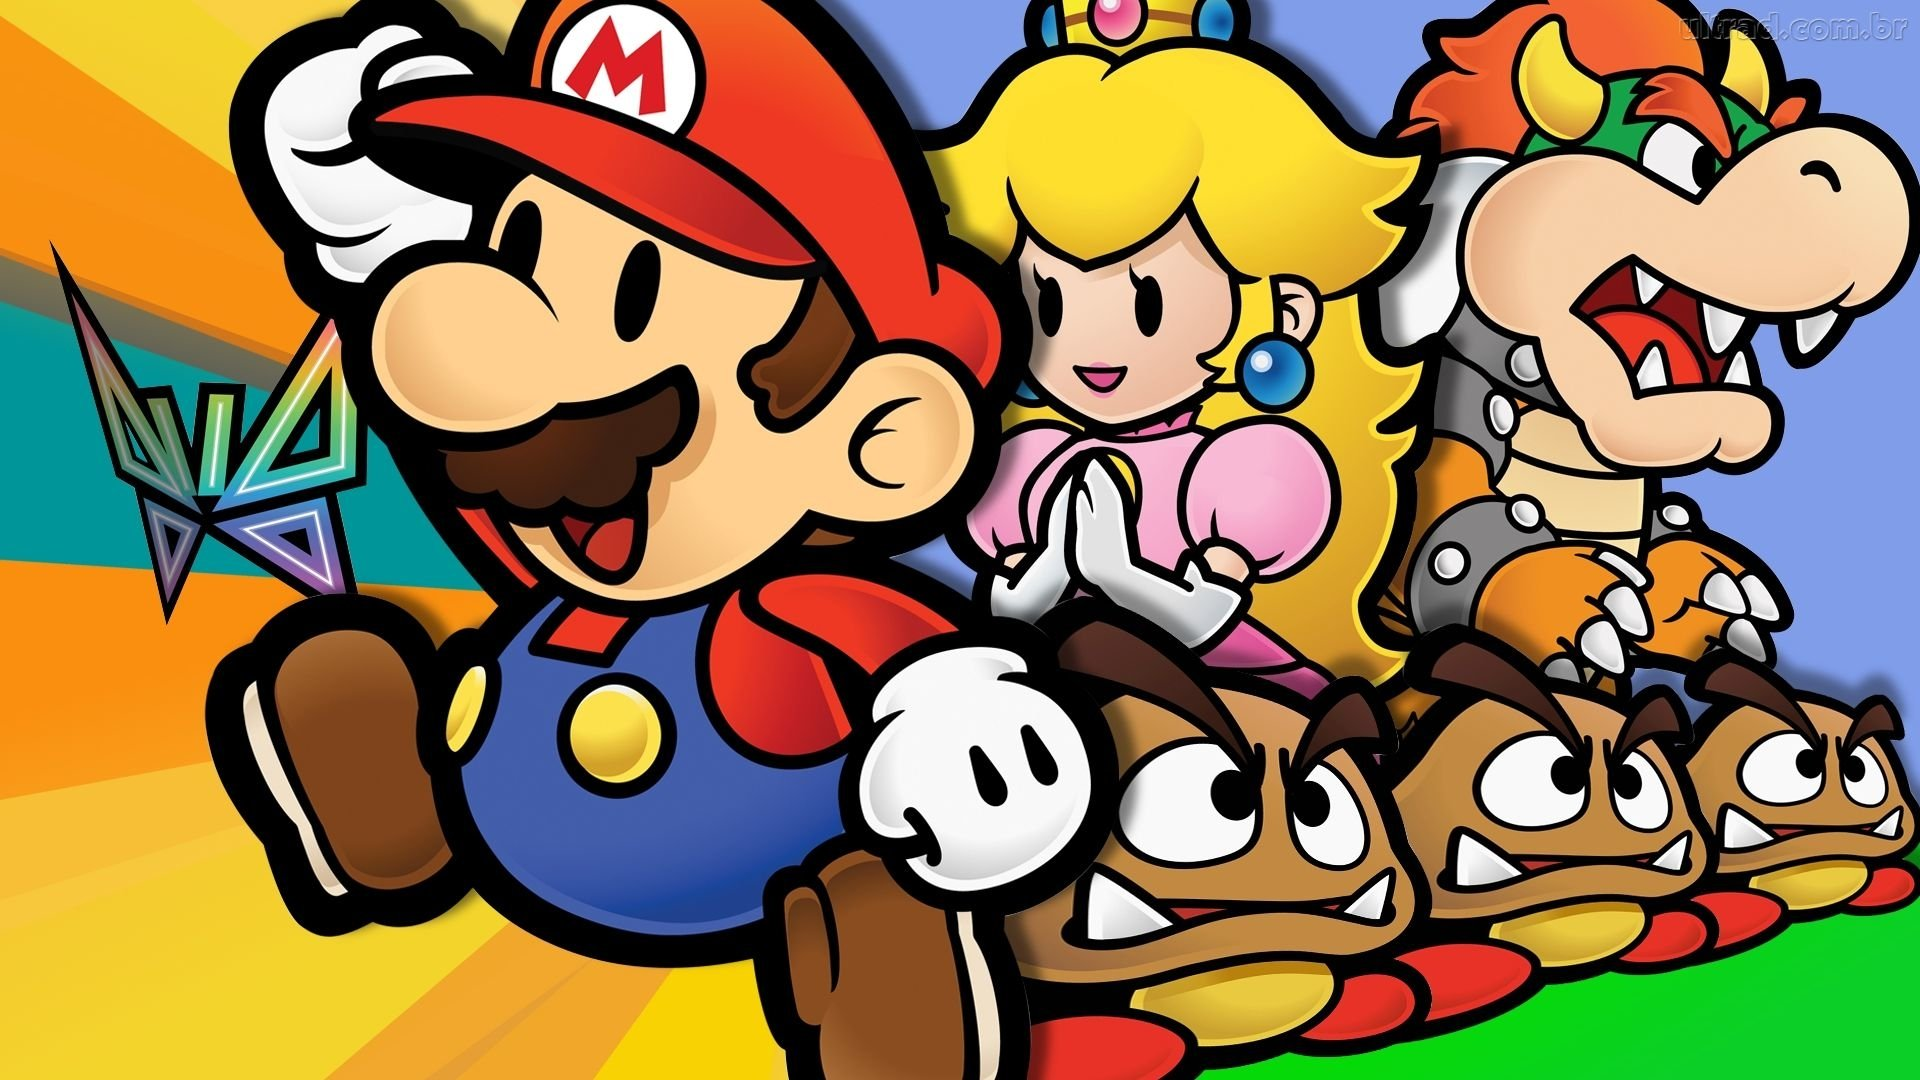 Video Game - Paper Mario: The Thousand-year Door  Wallpaper